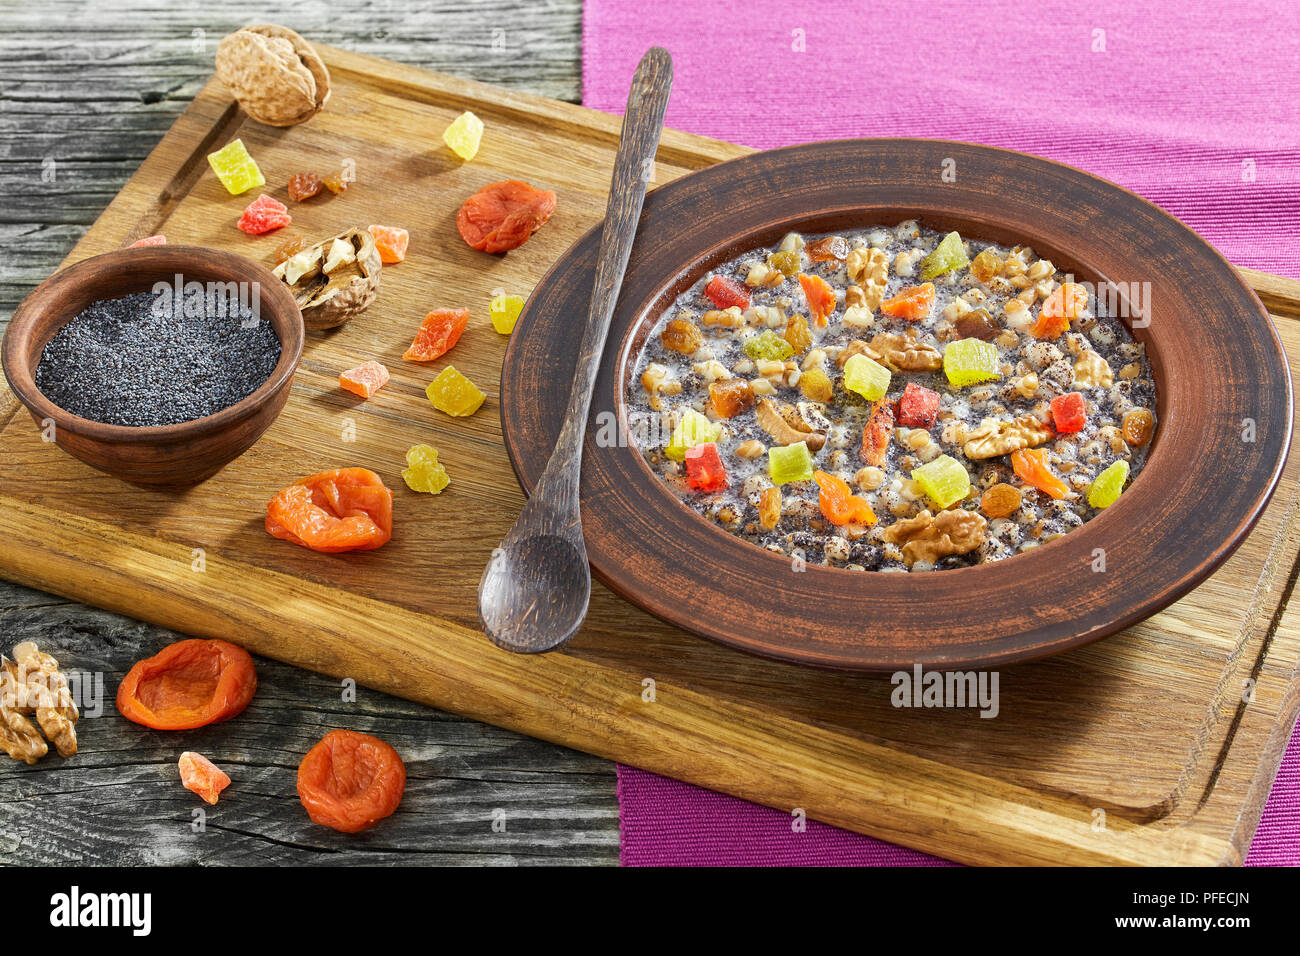 Traditional Christmas slavic dish kutia in ceramic bowl on chopping board with wooden spoon and ingredients on background, view from above, close-up - Stock Image